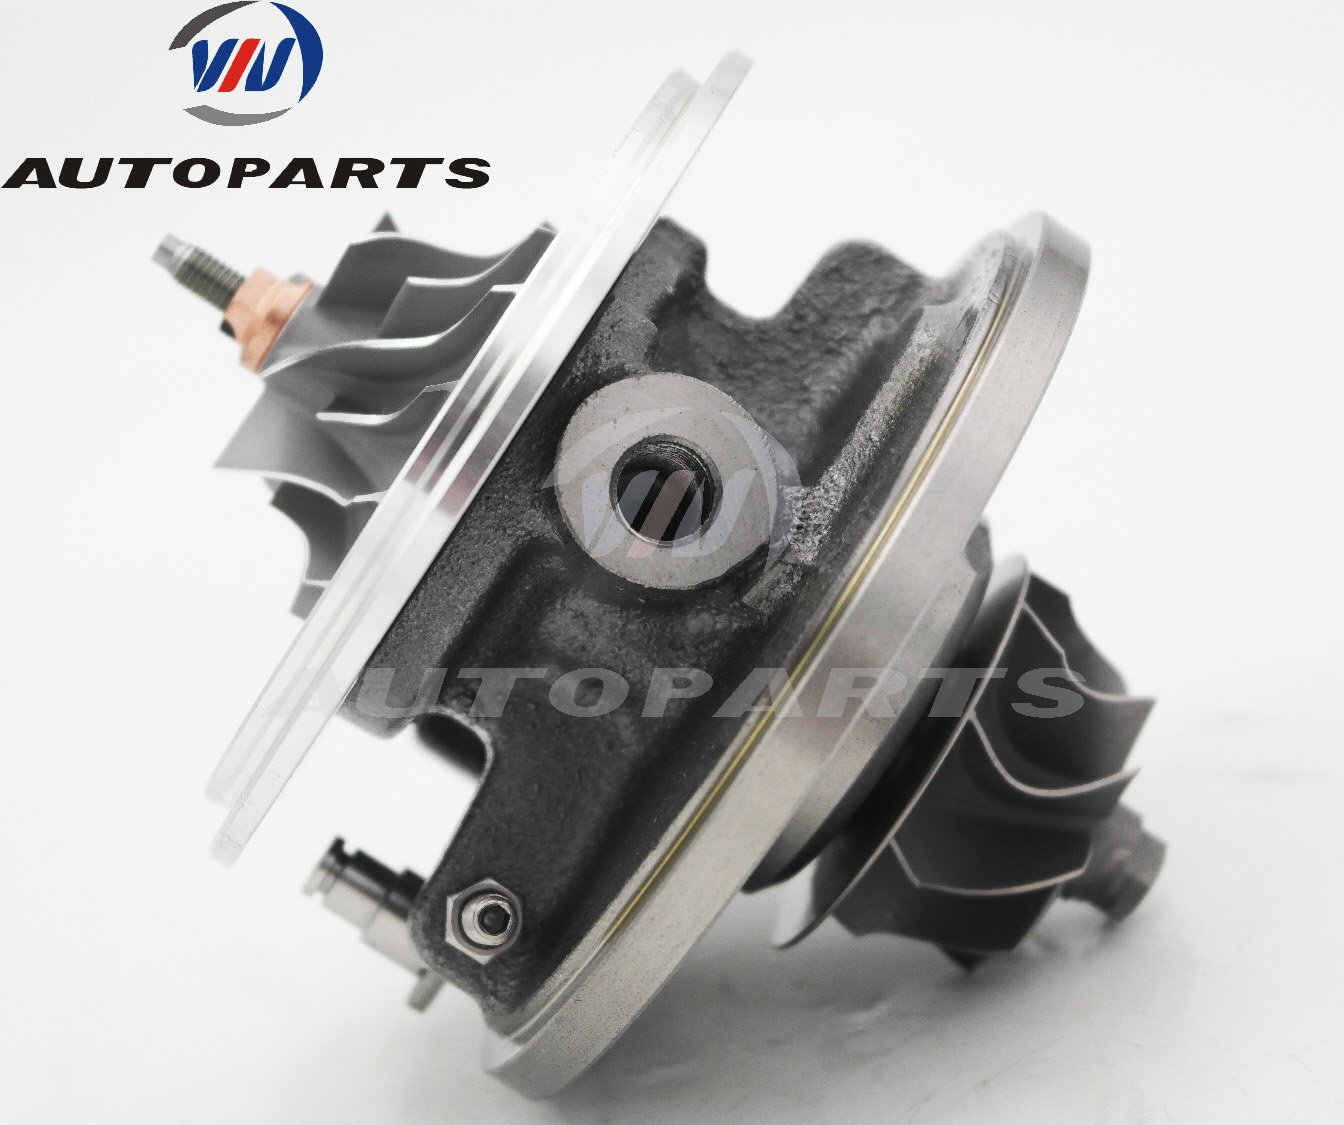 Amazon.com: CHRA 433395-0019 for Turbocharger 454231-0001 454231-0002 for Audi A4/A6 , Volkswagen PASSAT , Seat LEON 1.9L TDI Diesel Engine: Automotive